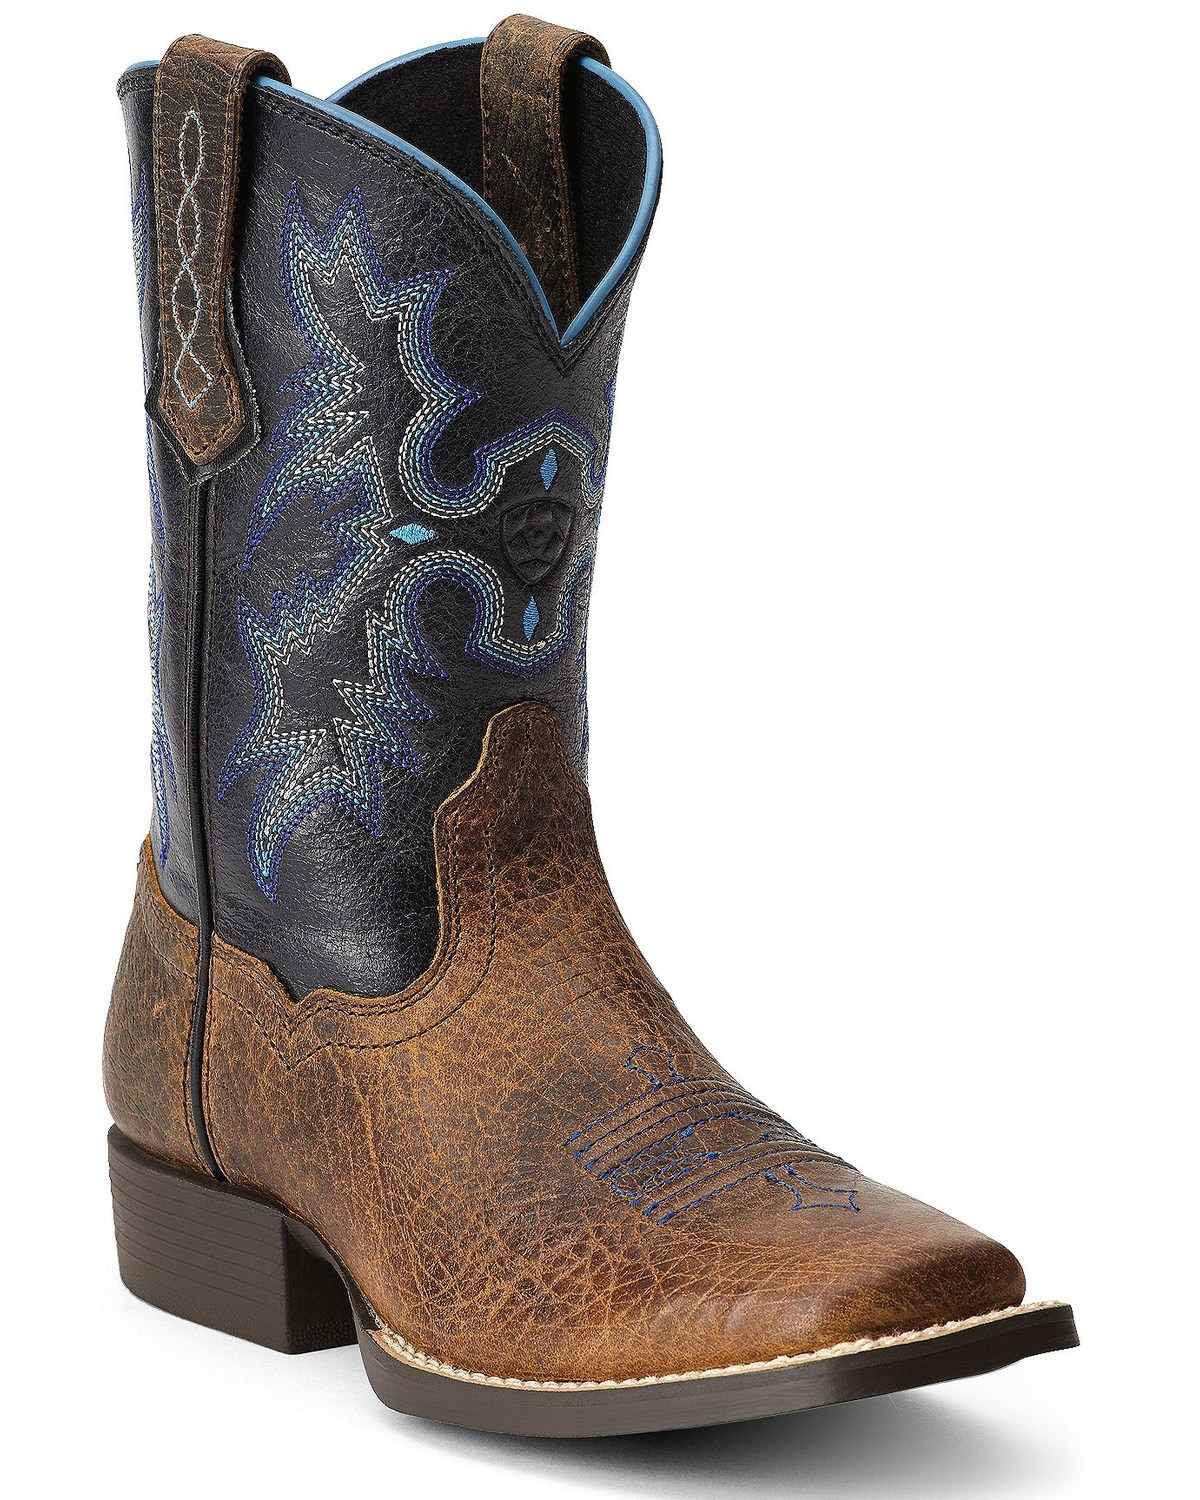 SHOP CLEARANCE COWBOY BOOTS BY SIZE